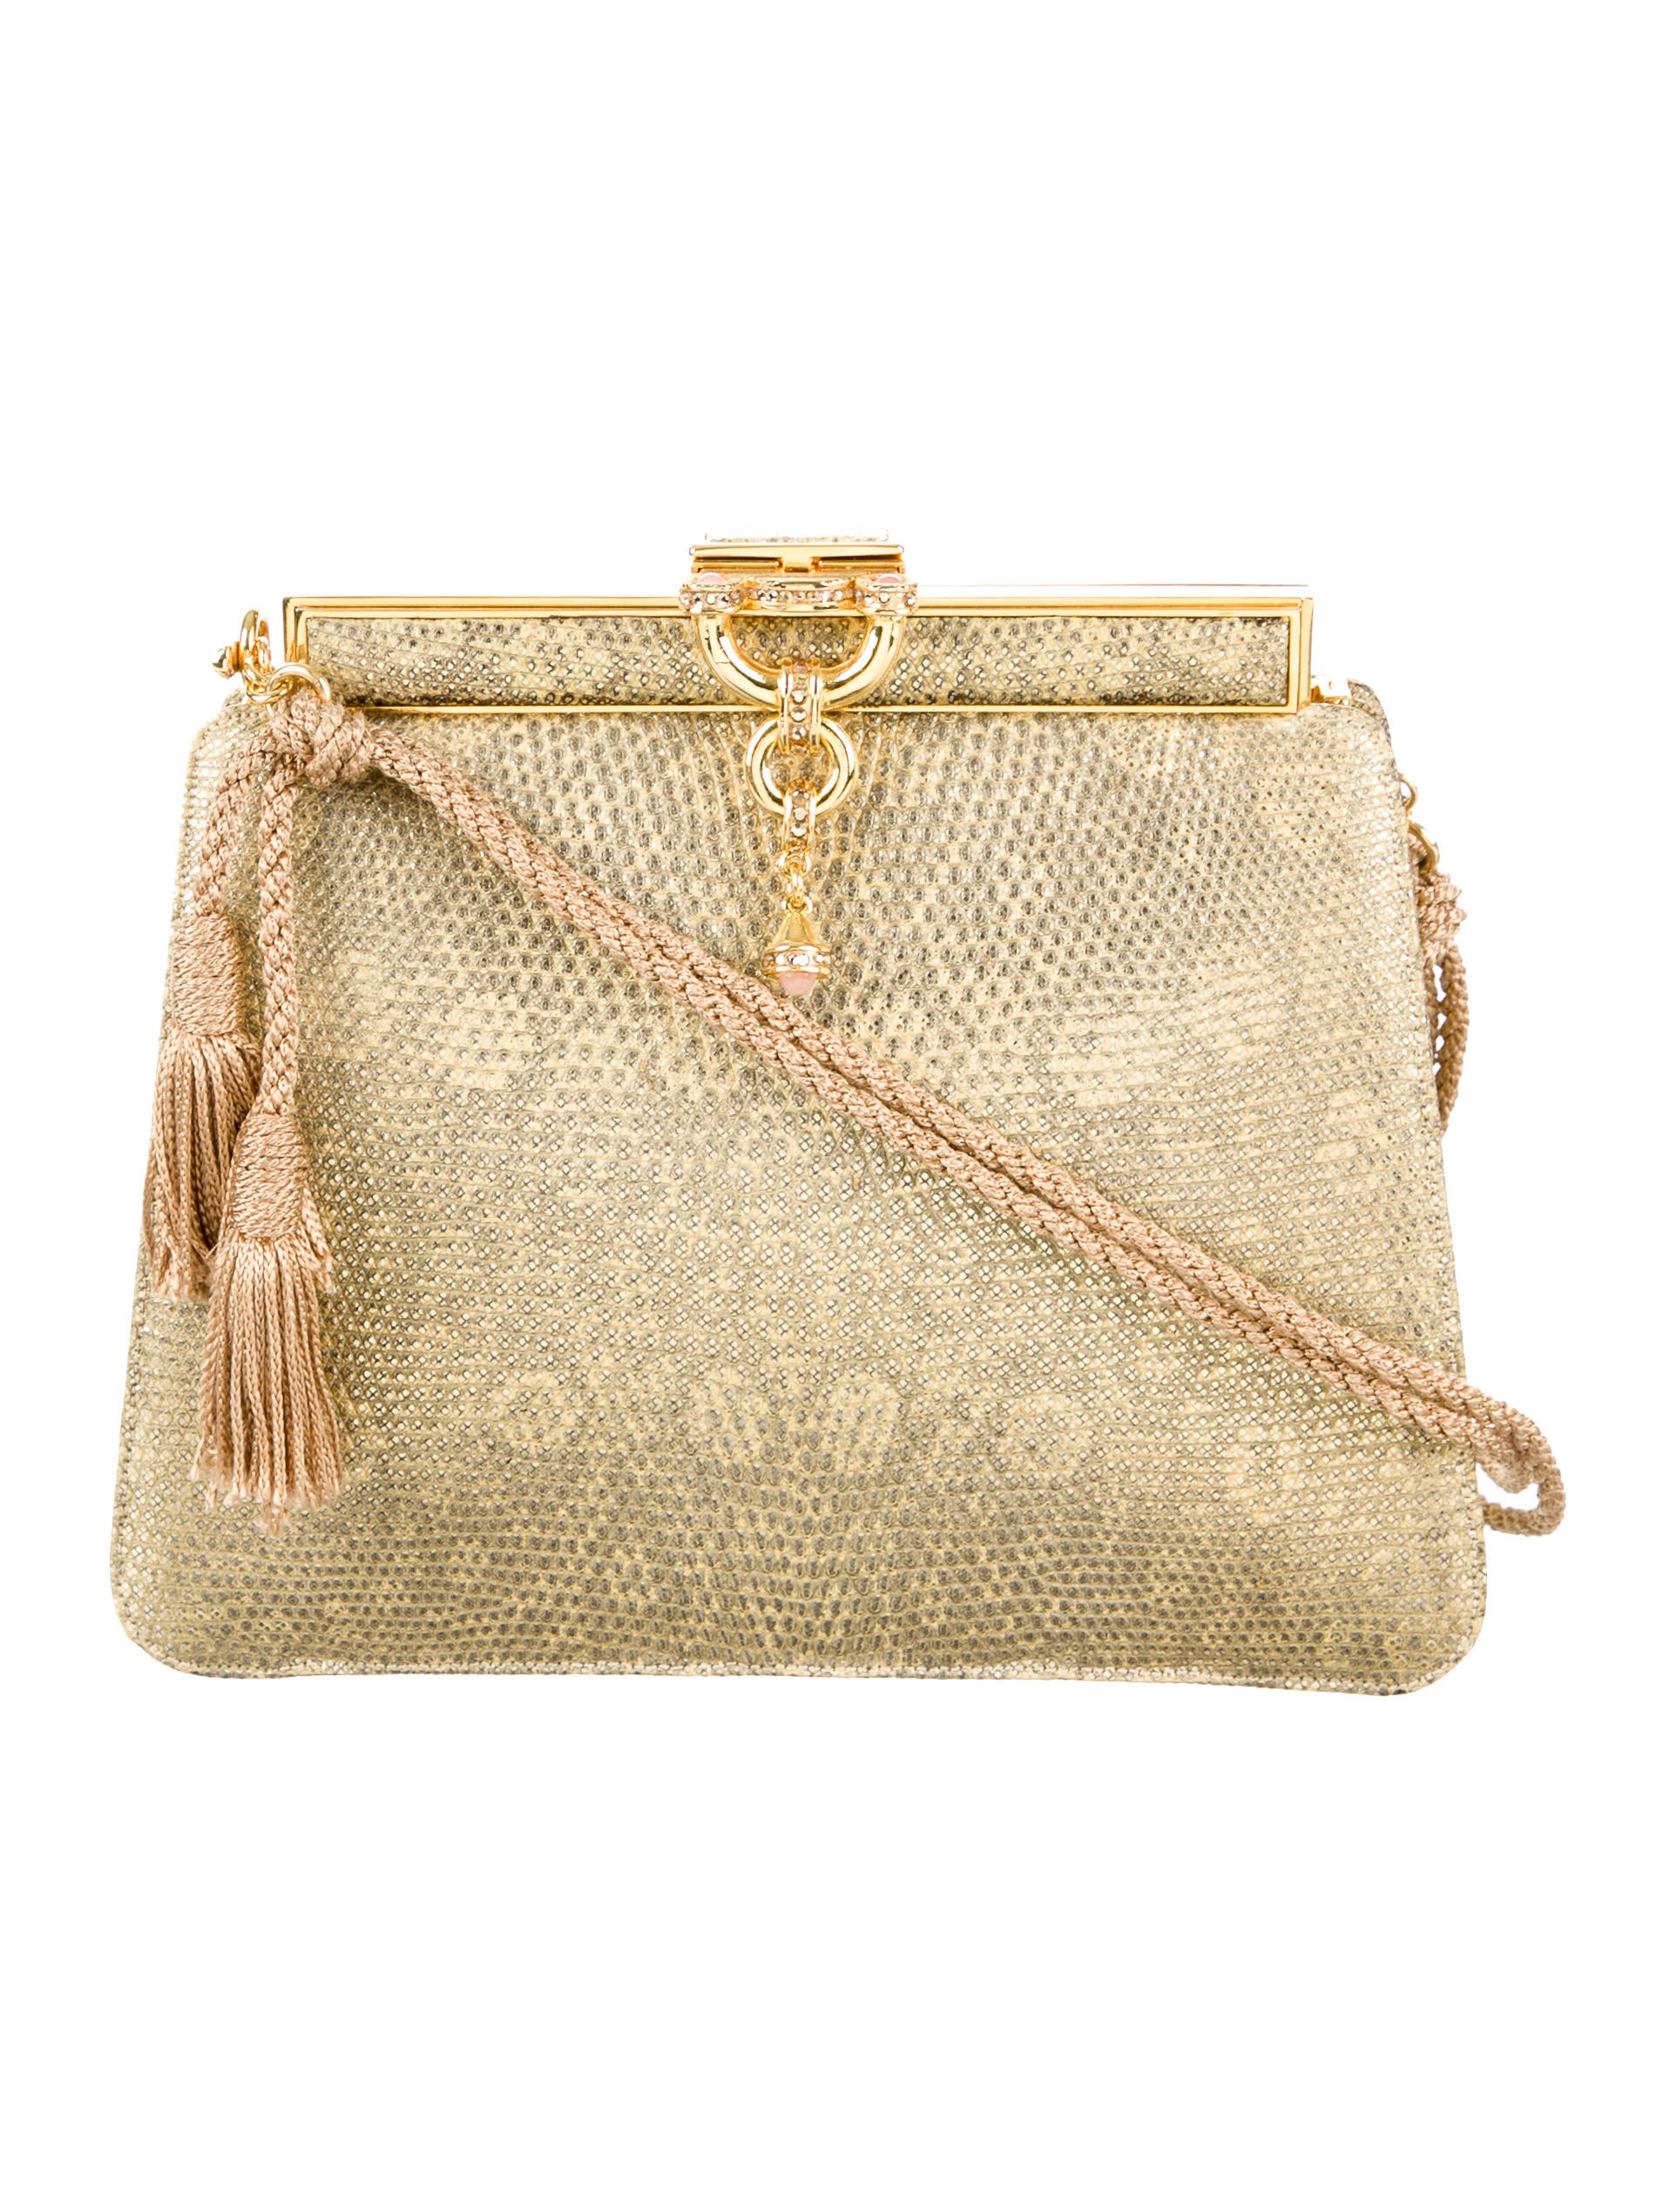 Judith Leiber Metallic Lizard Evening Bag Handbags